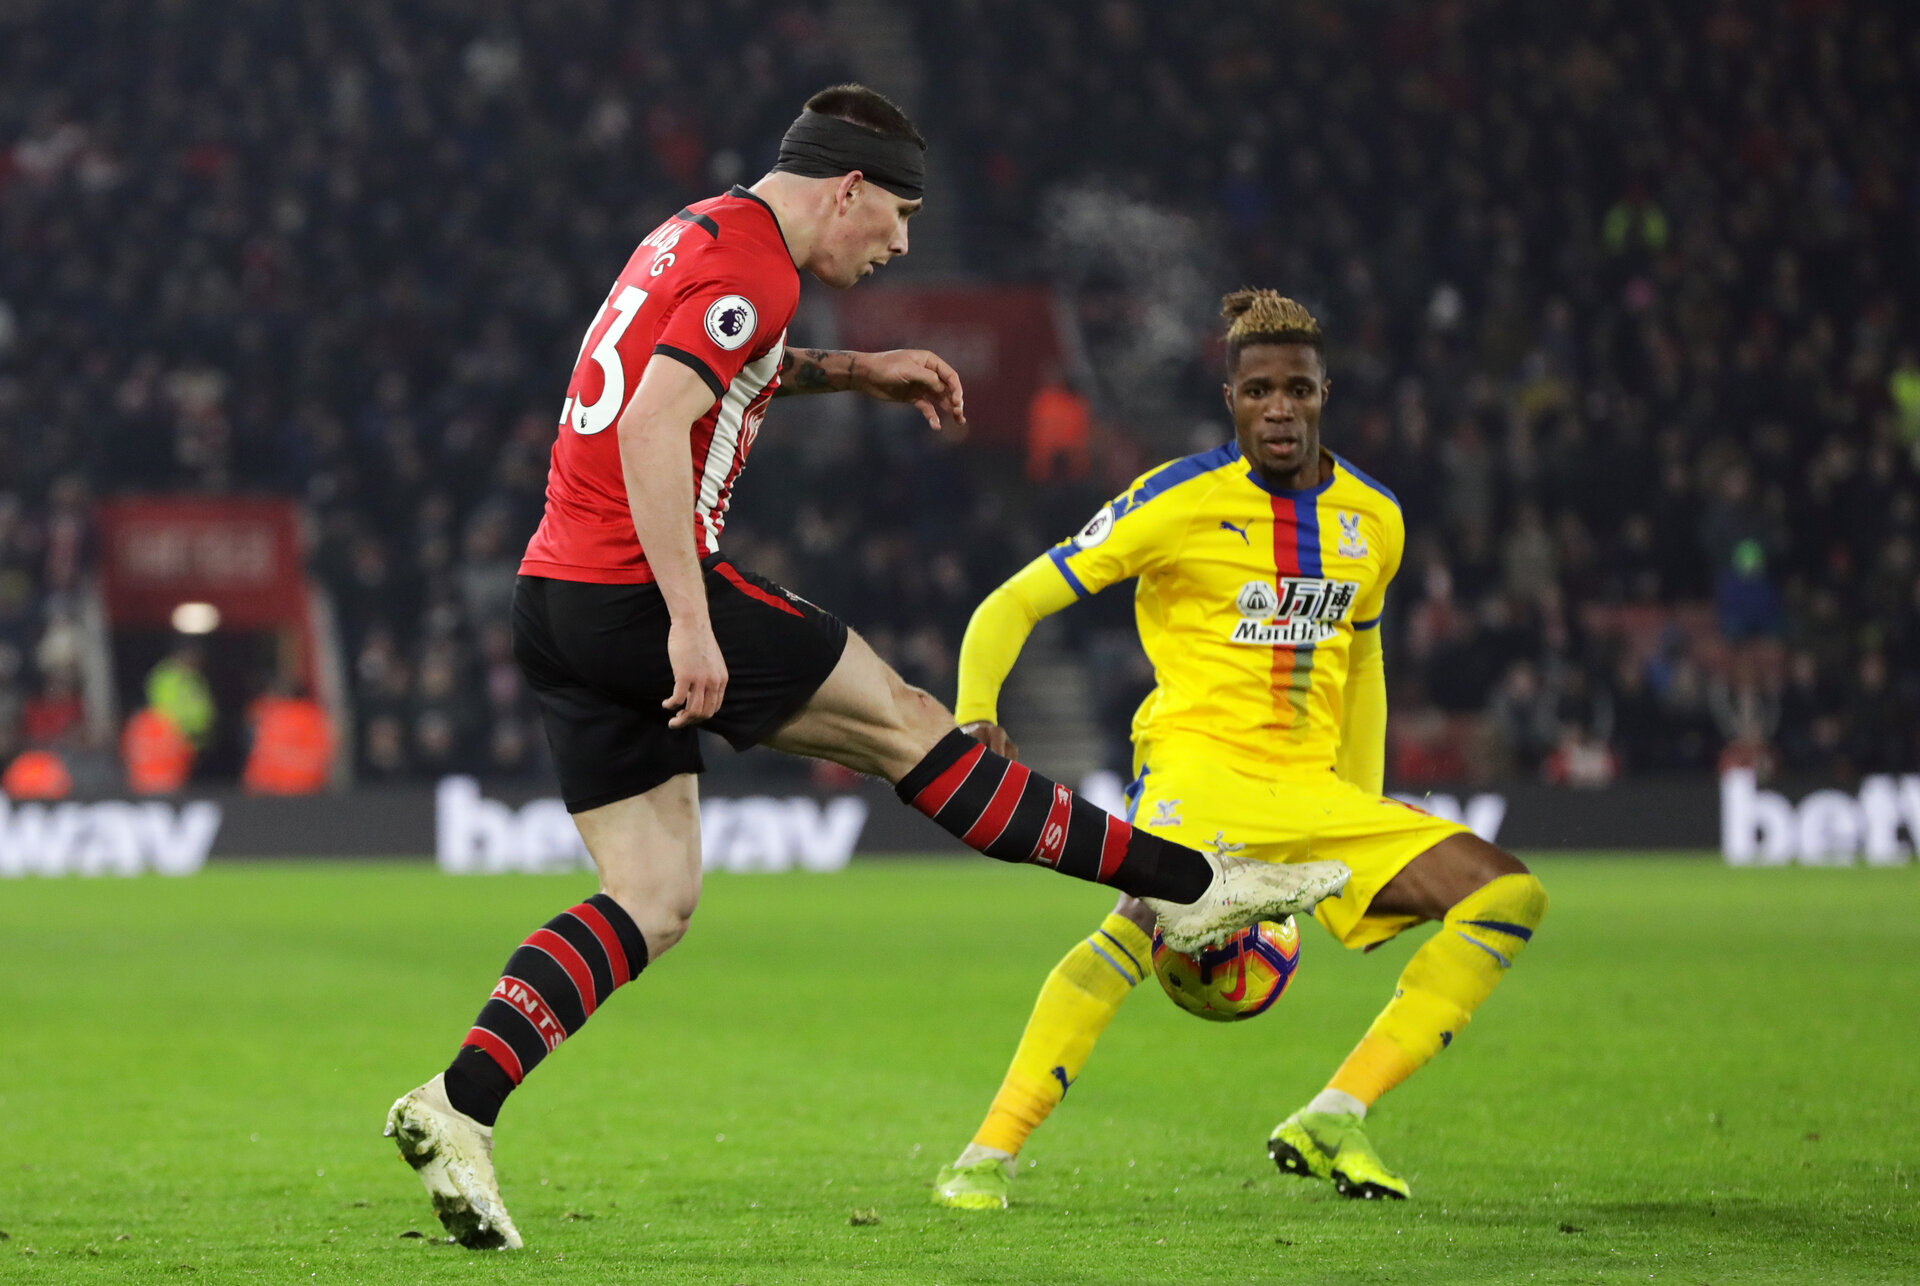 SOUTHAMPTON, ENGLAND - JANUARY 30: Pierre-Emile Hojbjerg during the Premier League match between Southampton FC and Crystal Palace FC at St Mary's Stadium on January 30, 2019 in Southampton, United Kingdom. (Photo by Chris Moorhouse/ Southampton FC via Getty Images)